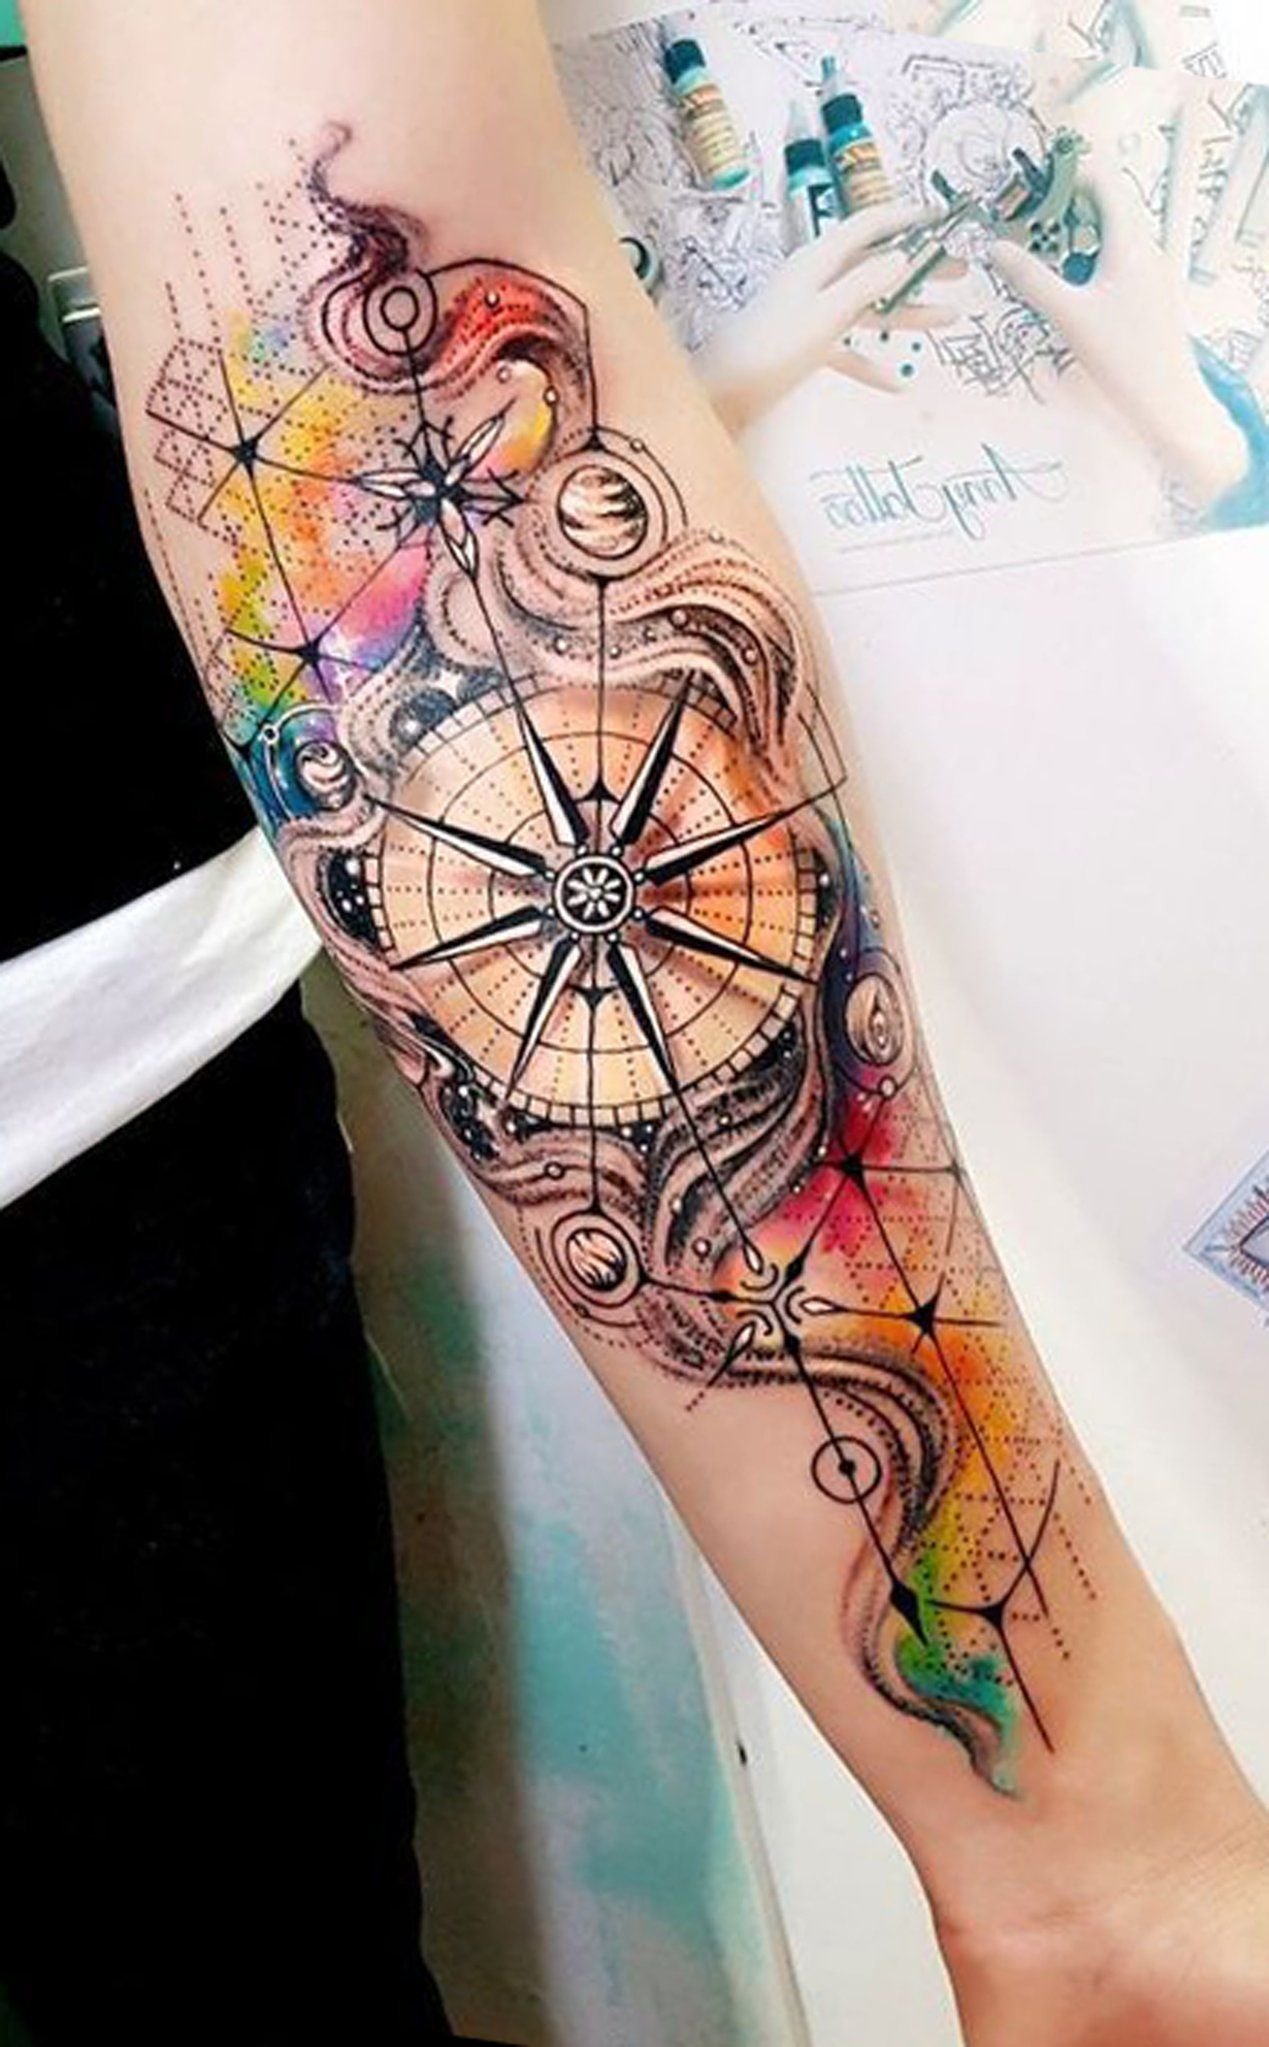 Watercolor Compass Inner Forearm Tattoo Ideas for Women